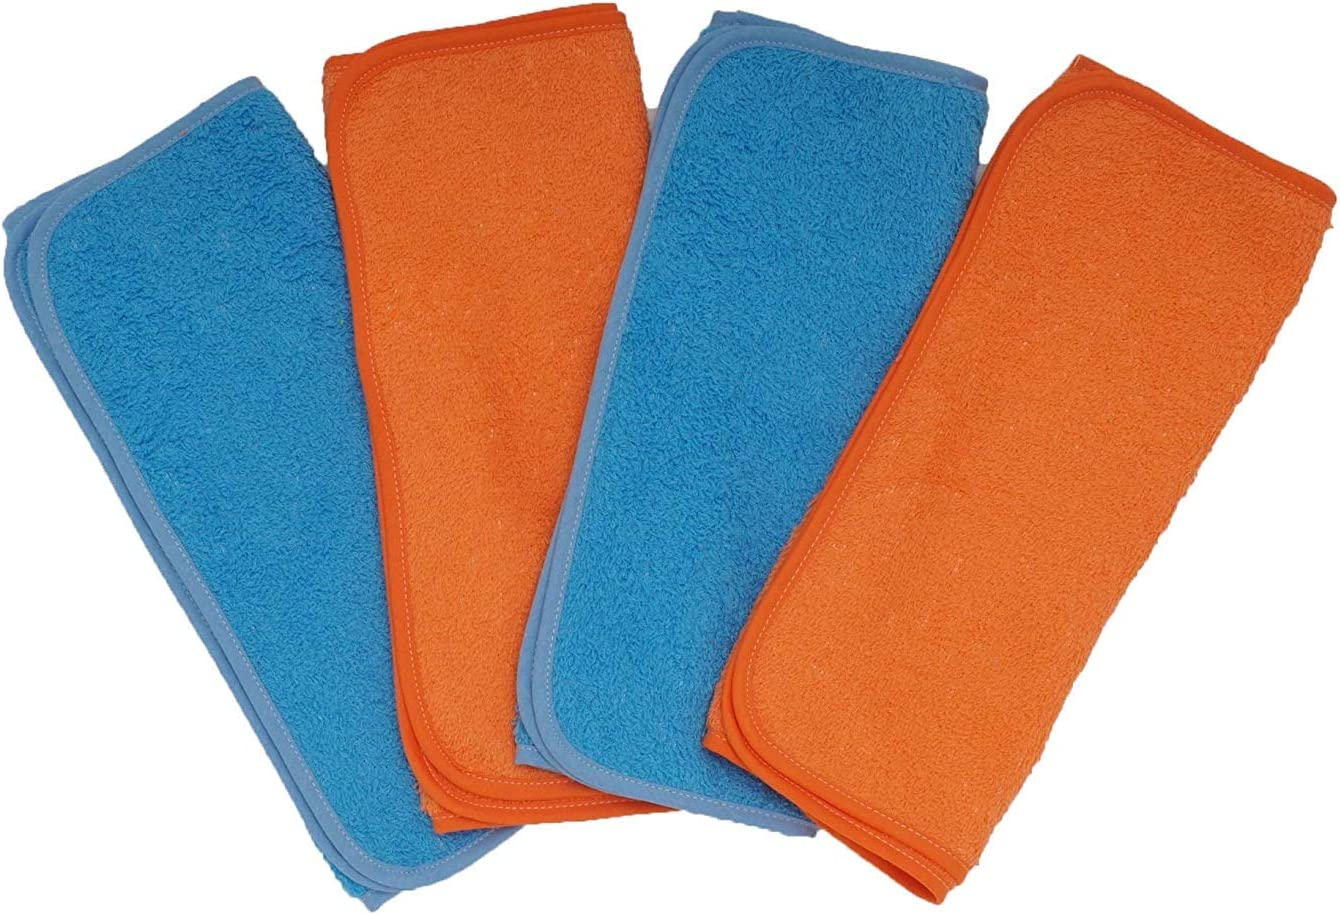 Ti TIN Lot de 4 Serviettes de cr/èche en /éponge Bleu//Orange